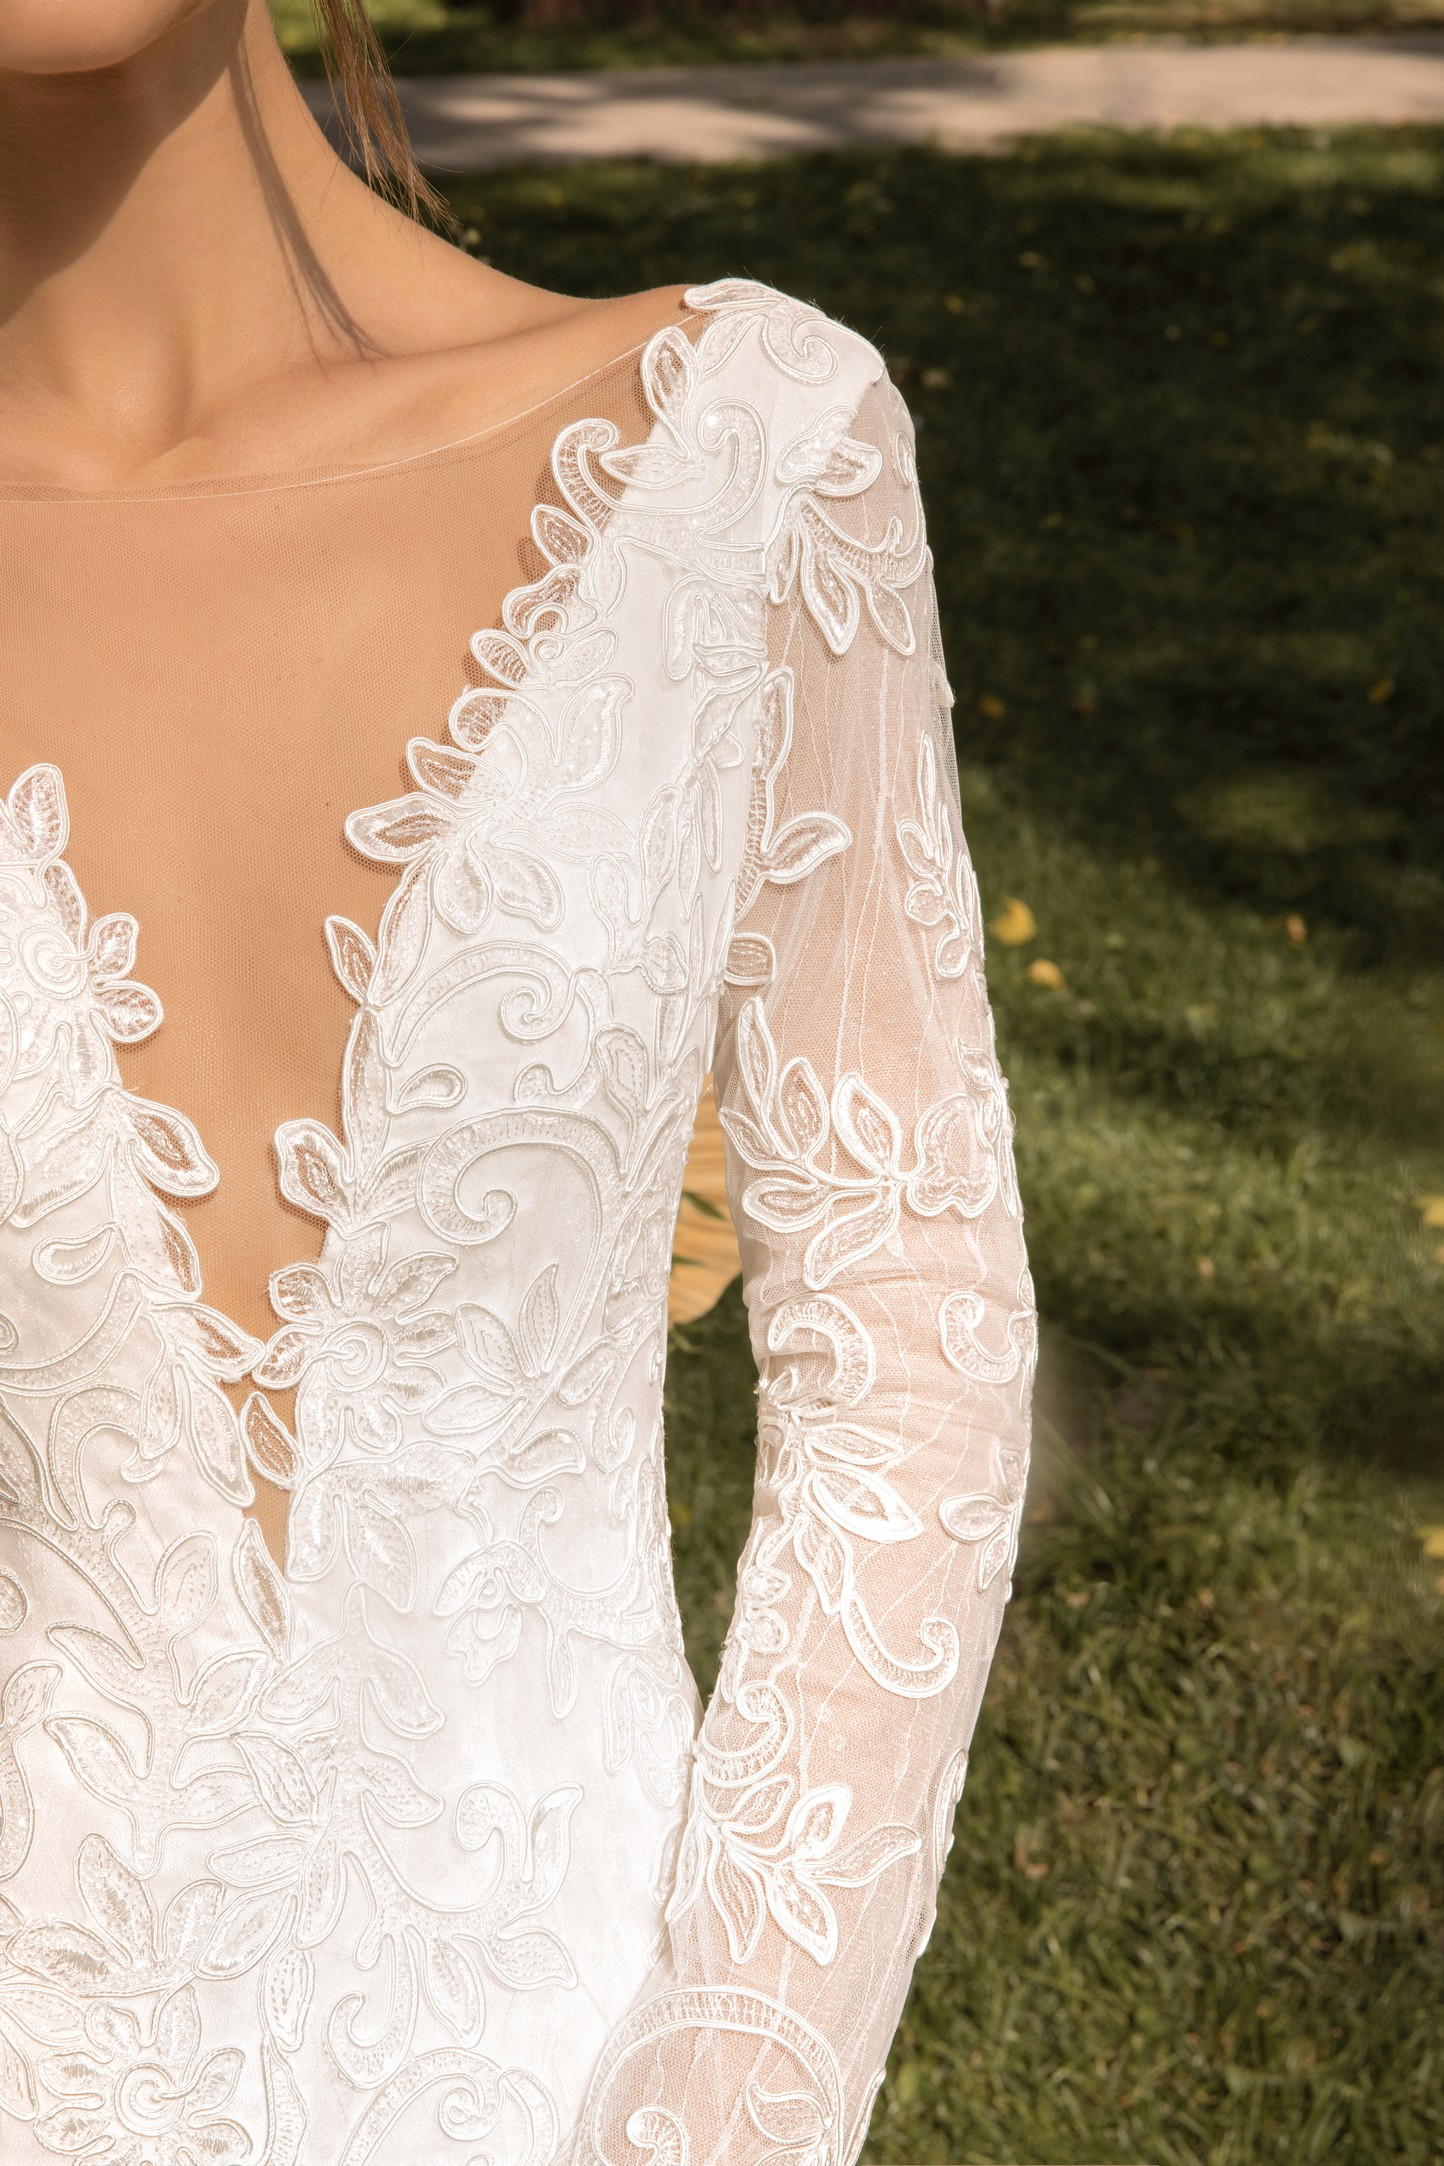 Lace A-line Wedding Dress With Corset Bodice, Ruched Long Sleeves And Bow Neck